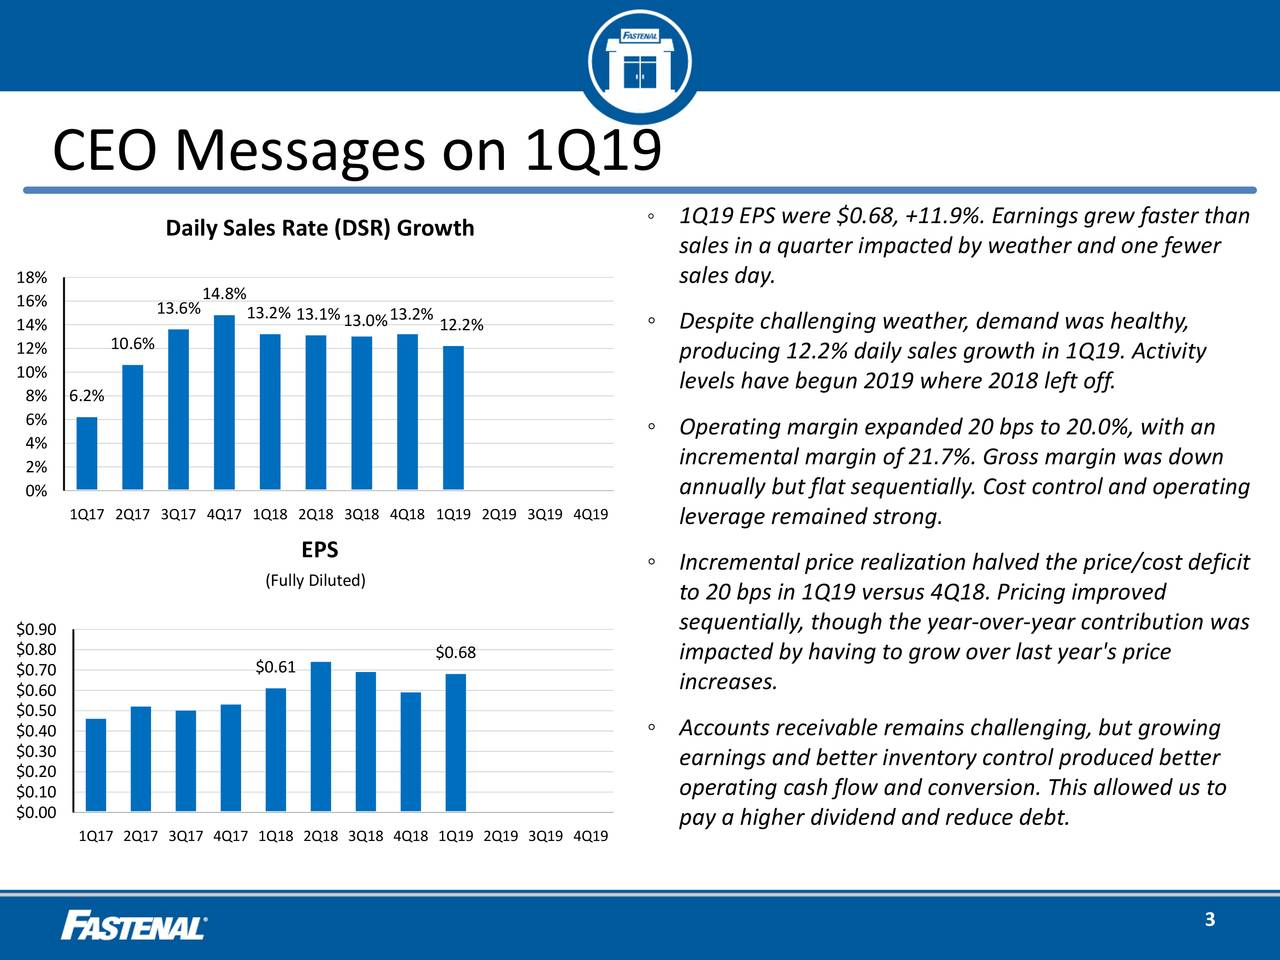 ◦ 1Q19 EPS were $0.68, +11.9%. Earnings grew faster than Daily Sales Rate (DSR) Growth sales in a quarter impacted by weather and one fewer 18% sales day. 16% 14.8% 14% 13.6% 13.2% 13.1%13.0%3.2% 12.2% ◦ Despite challenging weather, demand was healthy, 10.6% 12% producing 12.2% daily sales growth in 1Q19. Activity 10% levels have begun 2019 where 2018 left off. 8% 6.2% 6% ◦ Operating margin expanded 20 bps to 20.0%, with an 4% 2% incremental margin of 21.7%. Gross margin was down 0% annually but flat sequentially. Cost control and operating 1Q17 2Q17 3Q17 4Q17 1Q18 2Q18 3Q18 4Q18 1Q19 2Q19 3Q19 4Q19 leverage remained strong. EPS (Fully Diluted) ◦ Incremental price realization halved the price/cost deficit to 20 bps in 1Q19 versus 4Q18. Pricing improved $0.90 sequentially, though the year-over-year contribution was $0.80 $0.68 impacted by having to grow over last year's price $0.70 $0.61 increases. $0.60 $0.50 ◦ Accounts receivable remains challenging, but growing $0.30 $0.20 earnings and better inventory control produced better $0.10 operating cash flow and conversion. This allowed us to $0.00 1Q17 2Q17 3Q17 4Q17 1Q18 2Q18 3Q18 4Q18 1Q19 2Q19 3Q19 4Q19 pay a higher dividend and reduce debt. 3